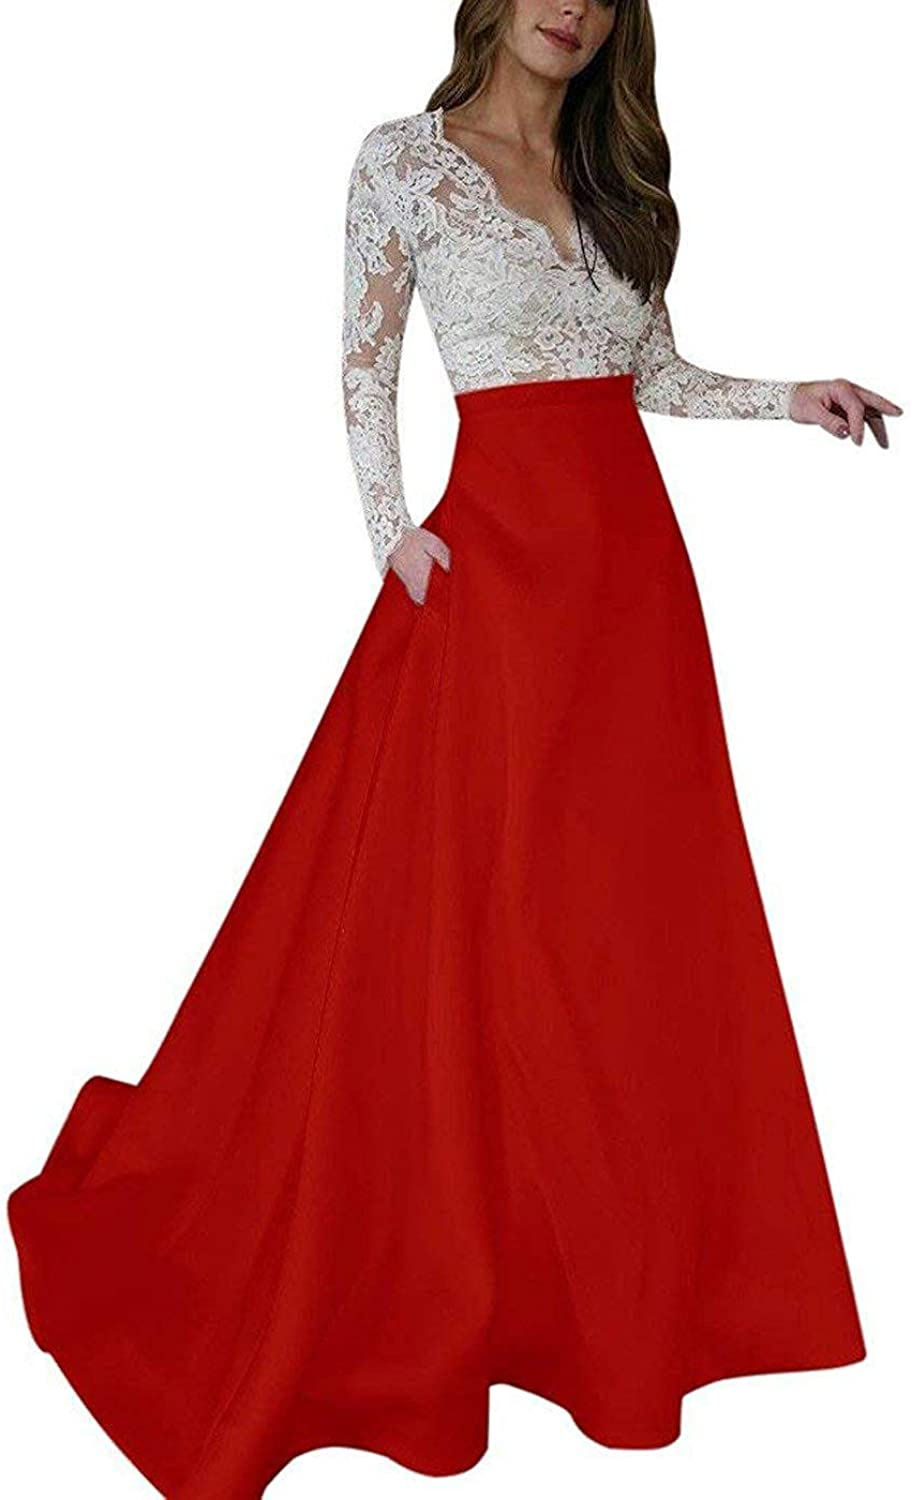 Sulidi Womens Deep VNeck Lace Long Sleeve Prom Dresses with Pockets Evening Formal Dress 2019 C241